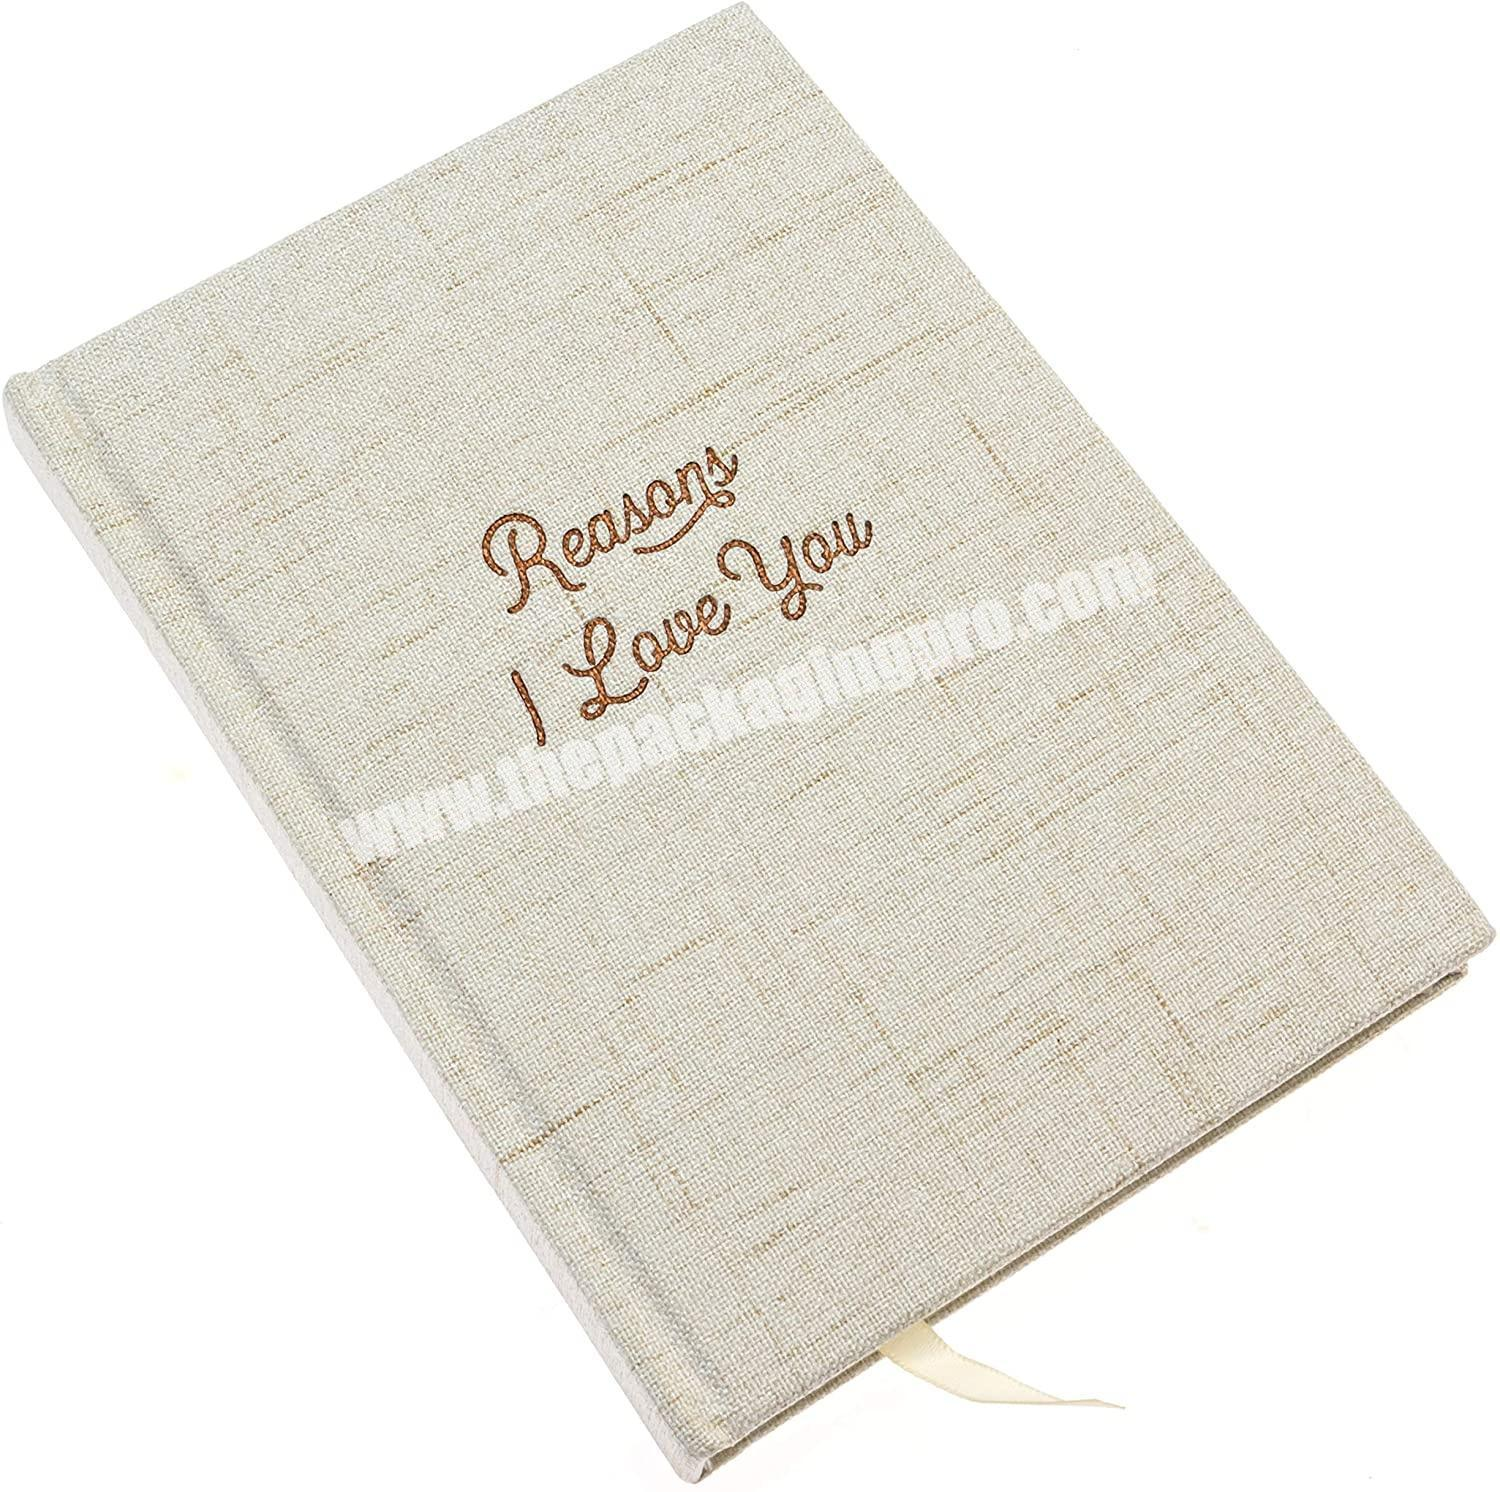 2020 Linen Cloth Cover Planners And NoteBooks Custom Diary A5 Executive Note Book Linen Canvas HardCover With Gold Foil Stamping